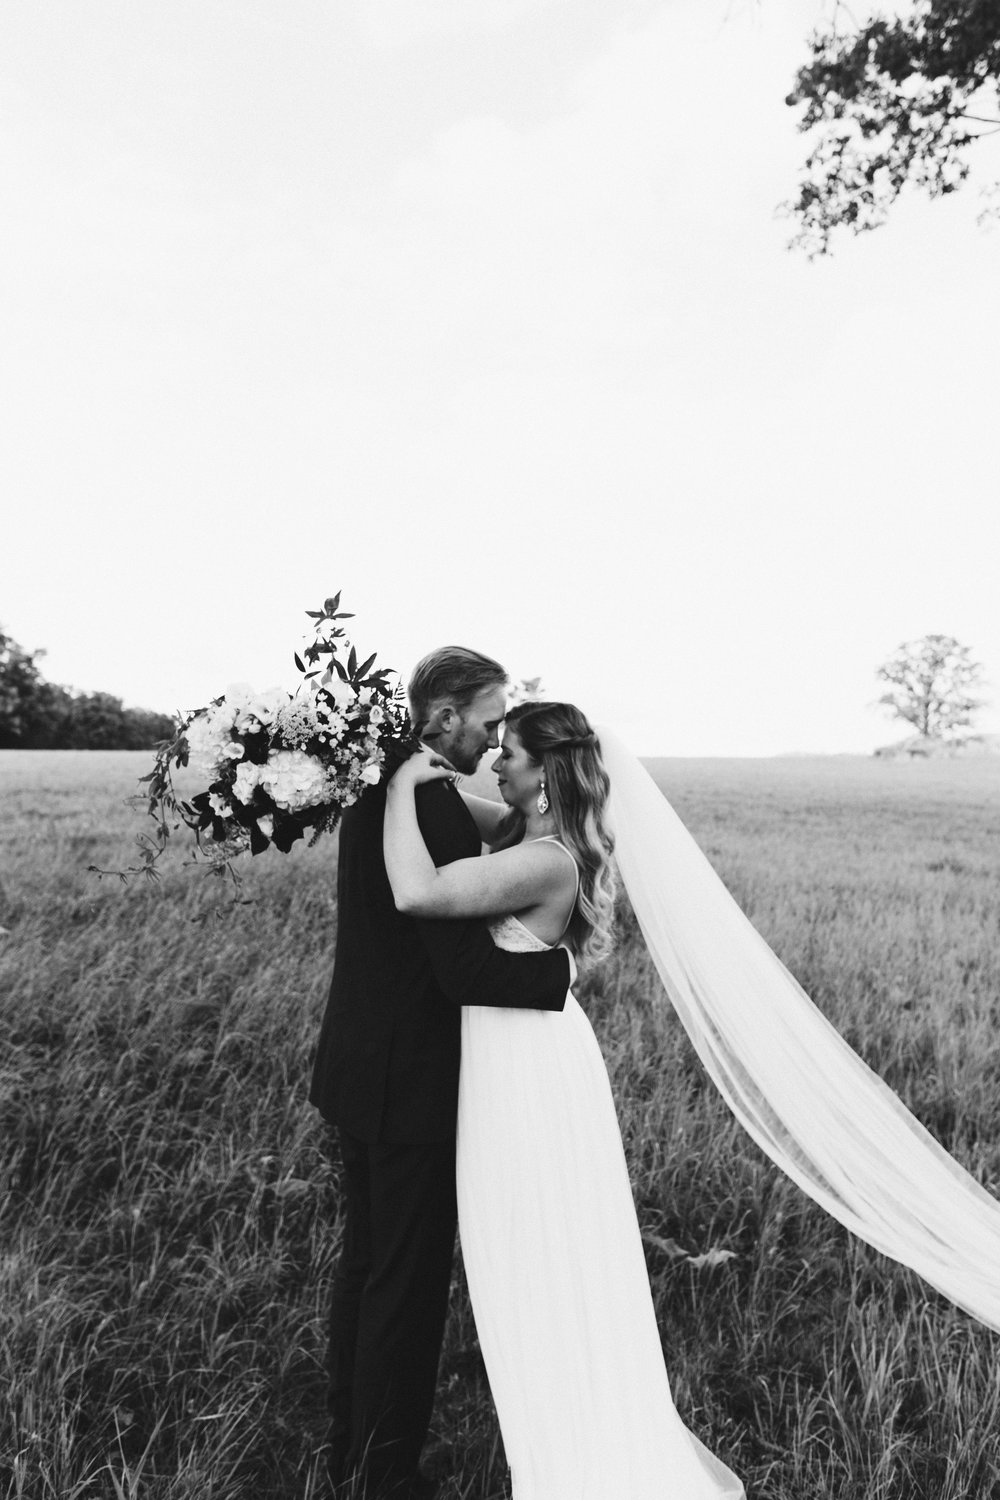 Keely & Nick's Enchanting Rural Wisconsin Wedding in August I Wisconsin Weddings I © NYLONSADDLE Photography